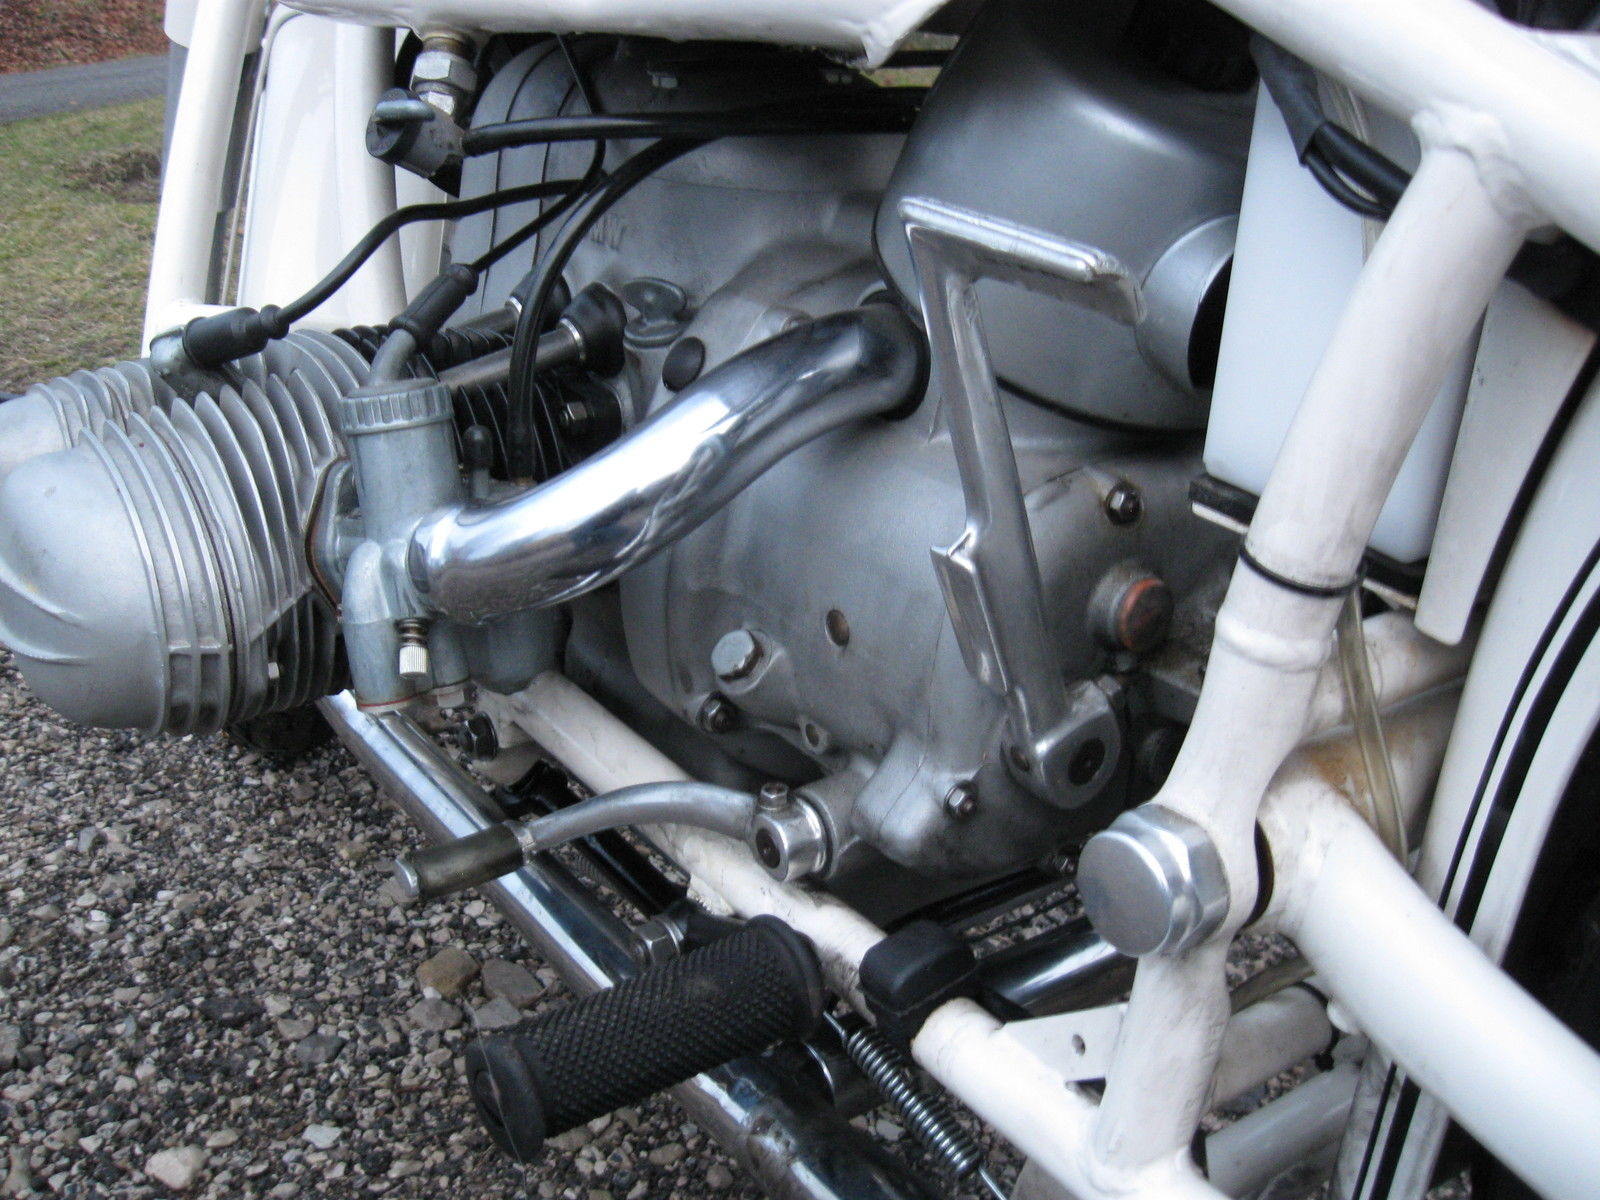 BMW R69S - 1966 - Carburettor, Intake Tube, Gear Lever and Kick Start